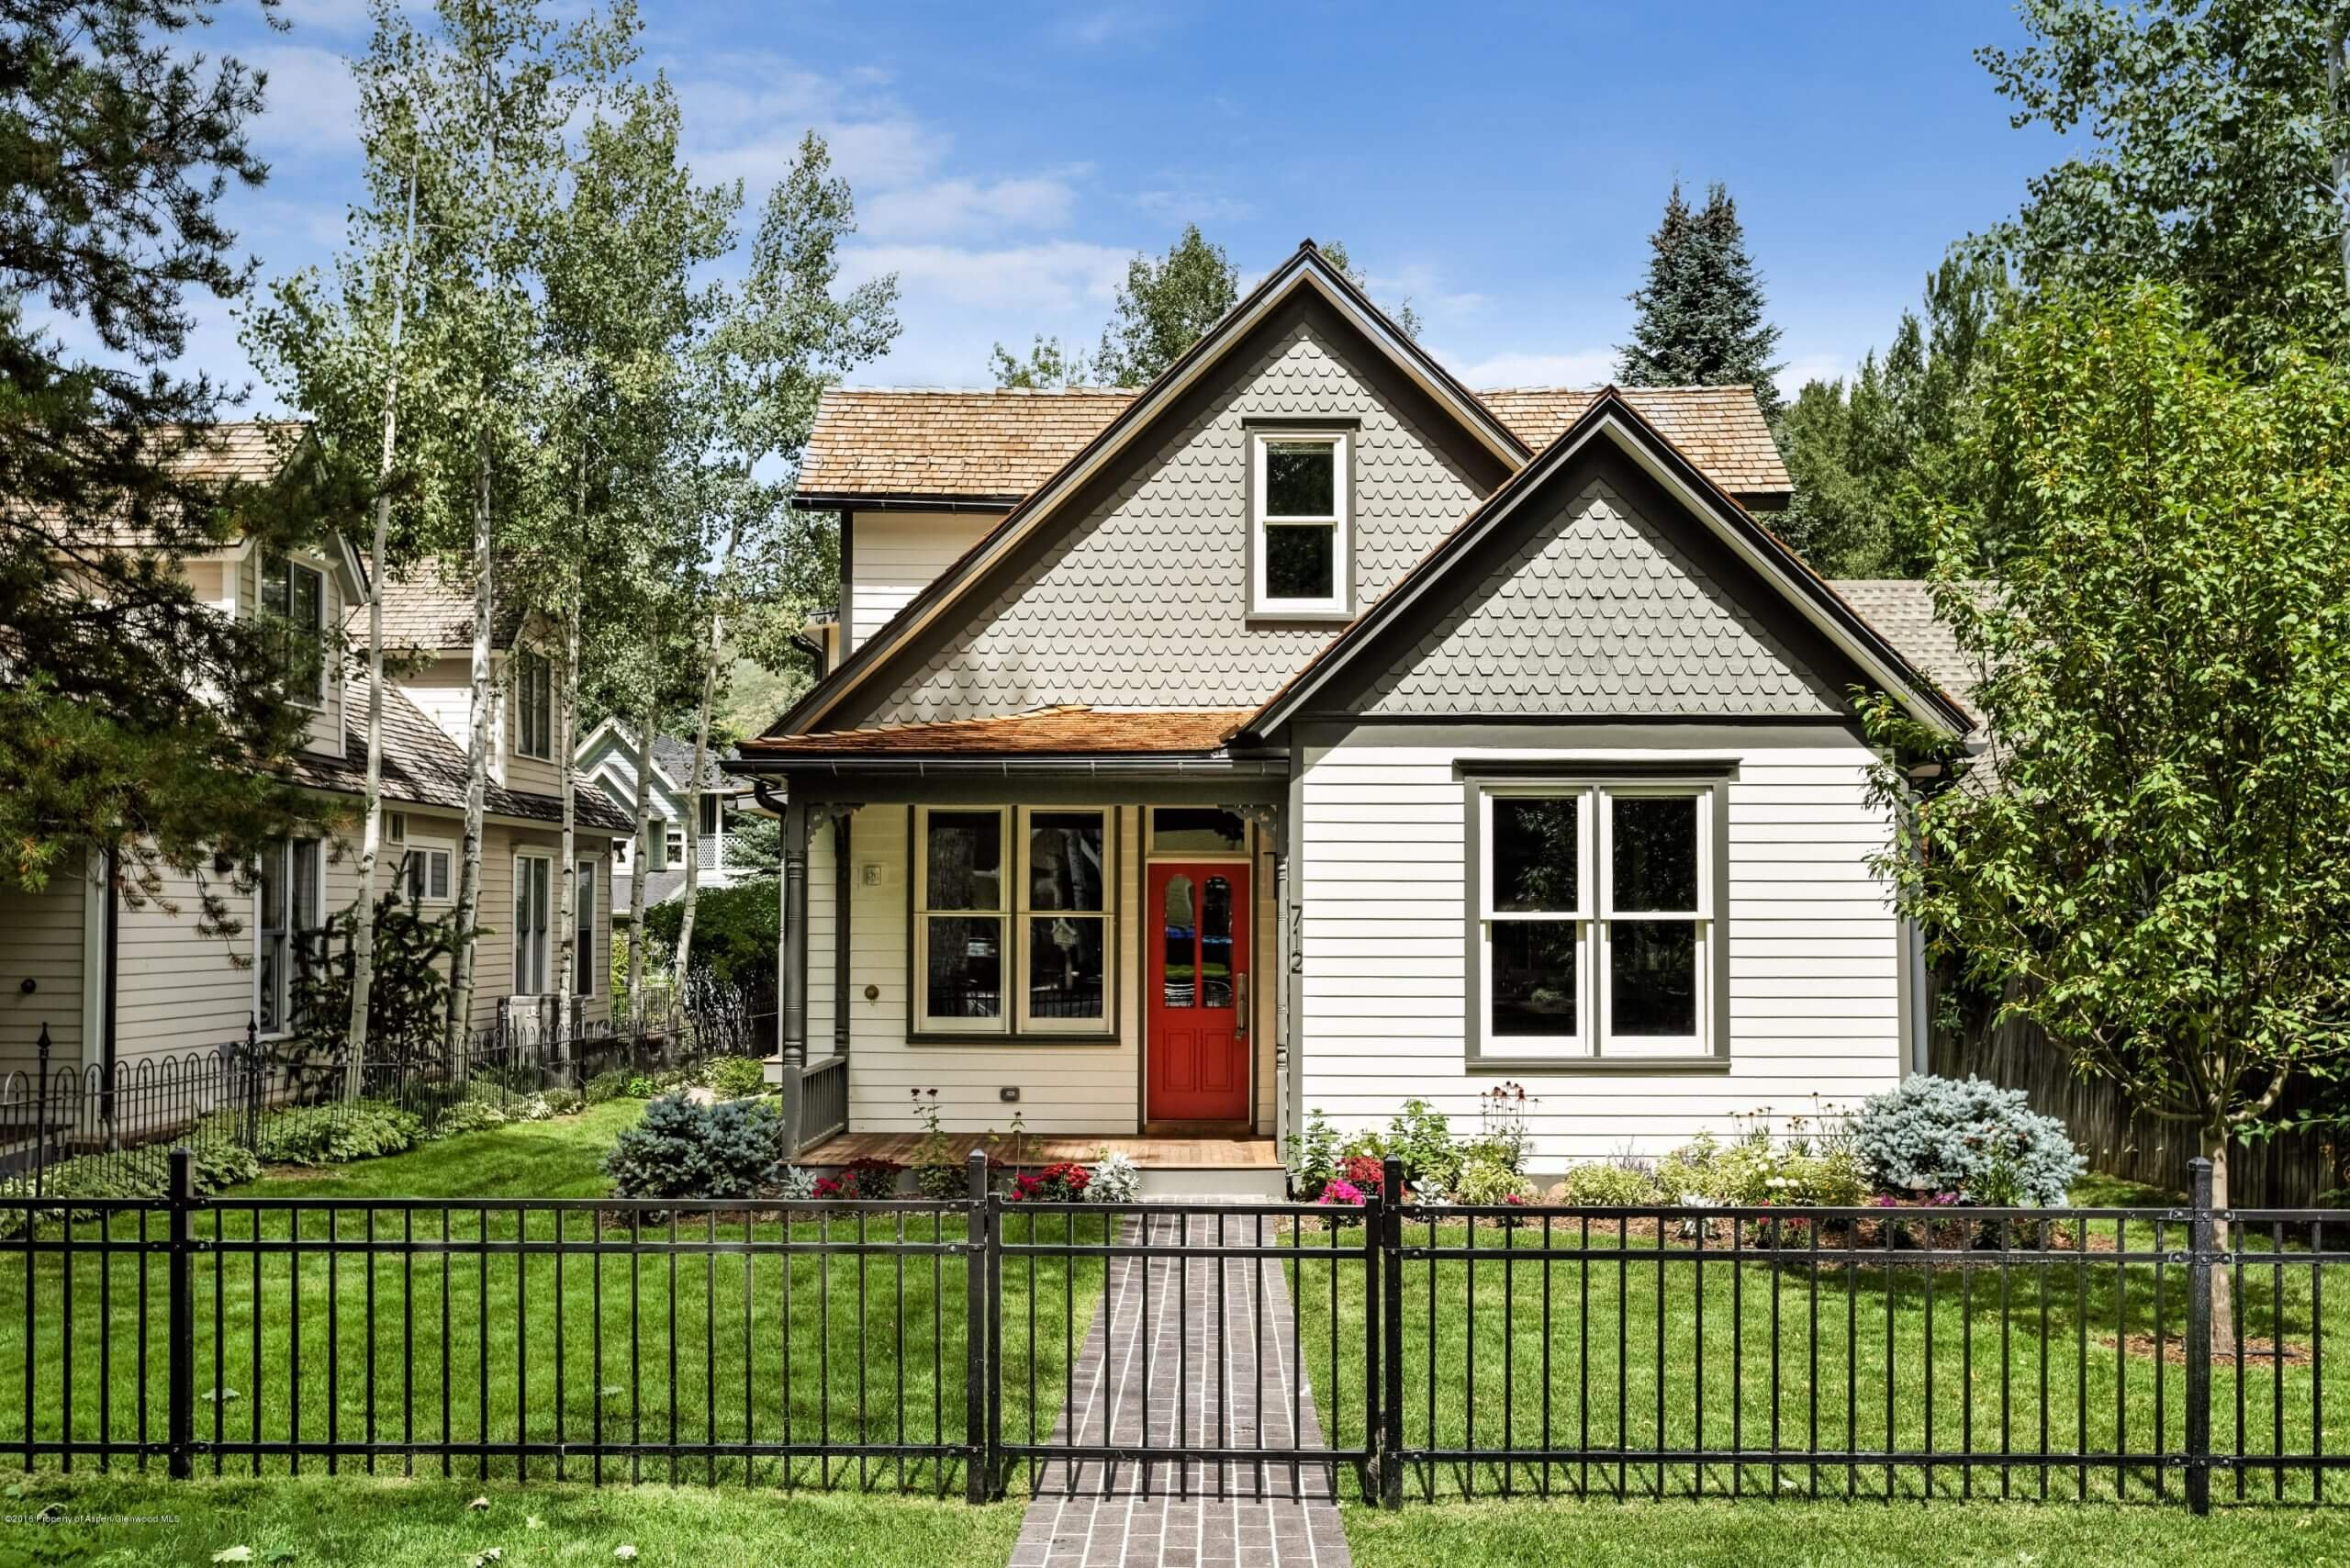 712 W Francis St in West End Aspen Closes at $7.7M/$1,720 SF Furn. Image